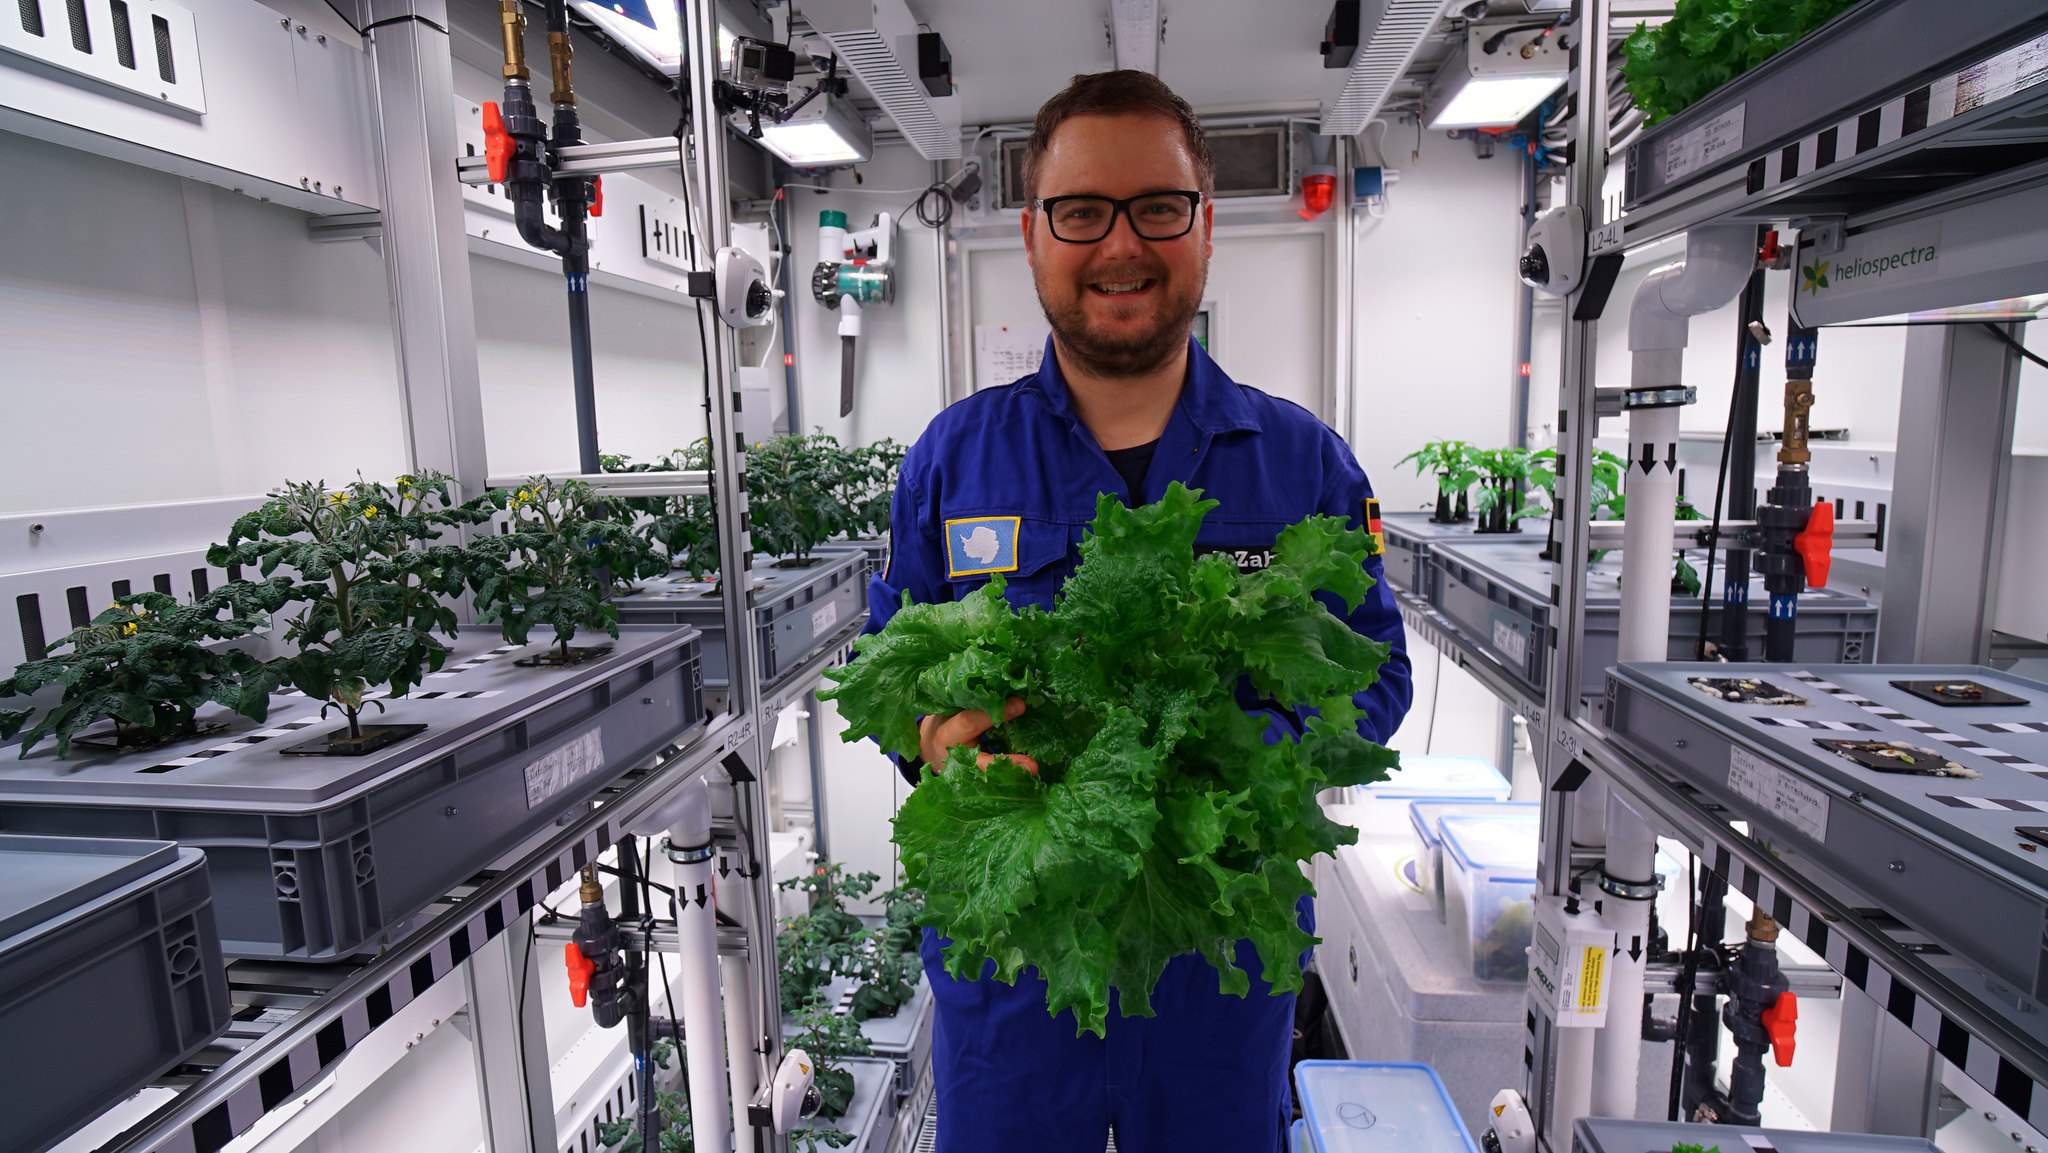 Scientists grew the first vegetables in Antarctica without soil or sunlight